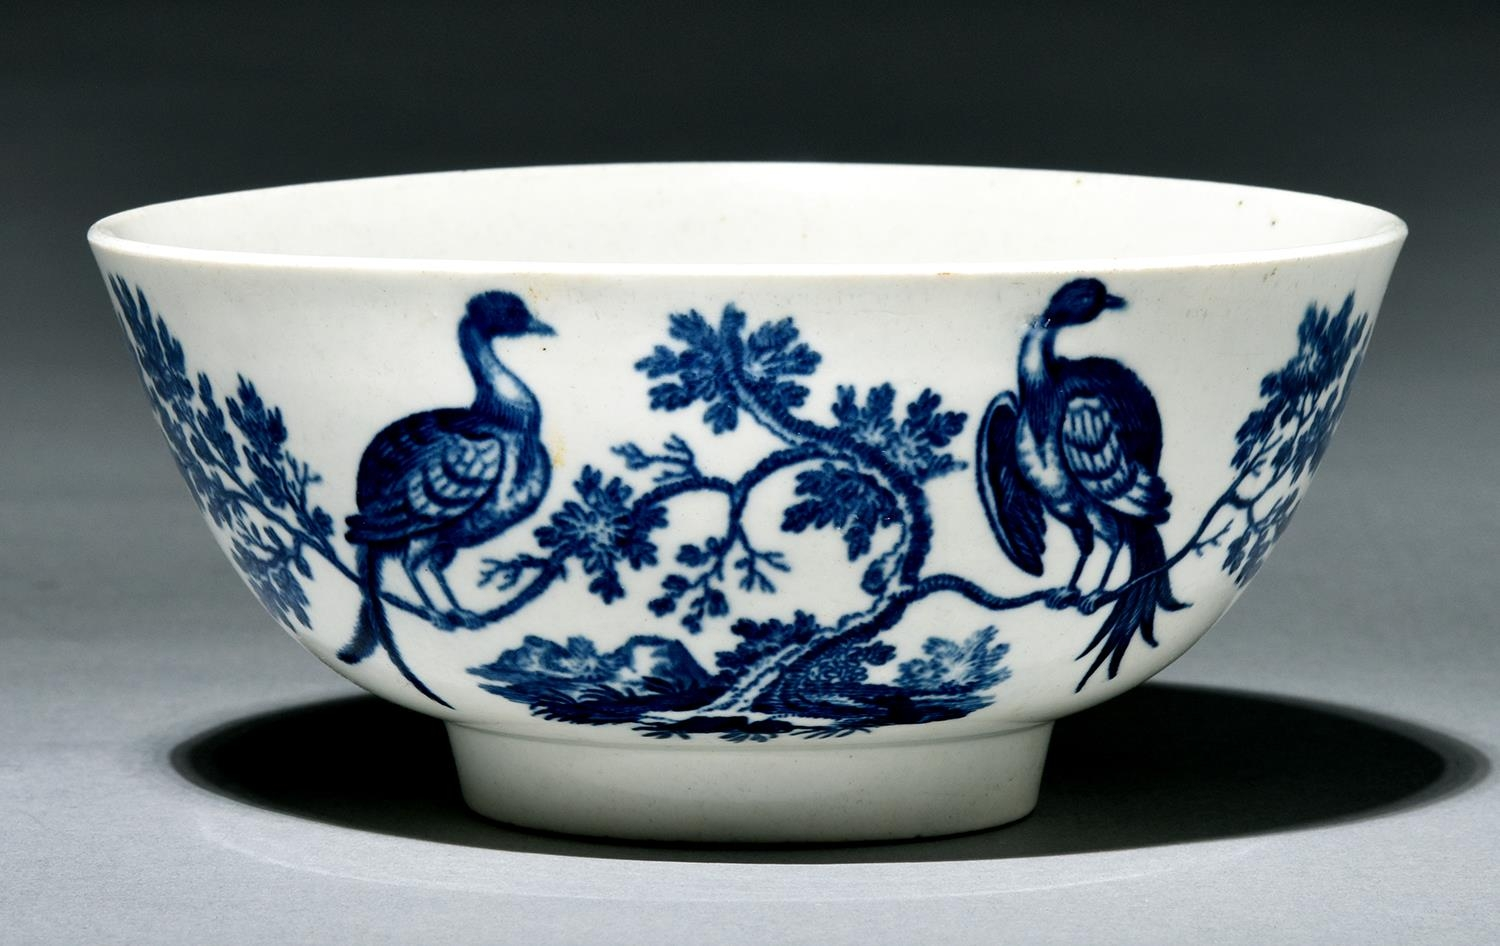 A Worcester bowl, c1780, transfer printed in underglaze blue with the Birds in Branches pattern,